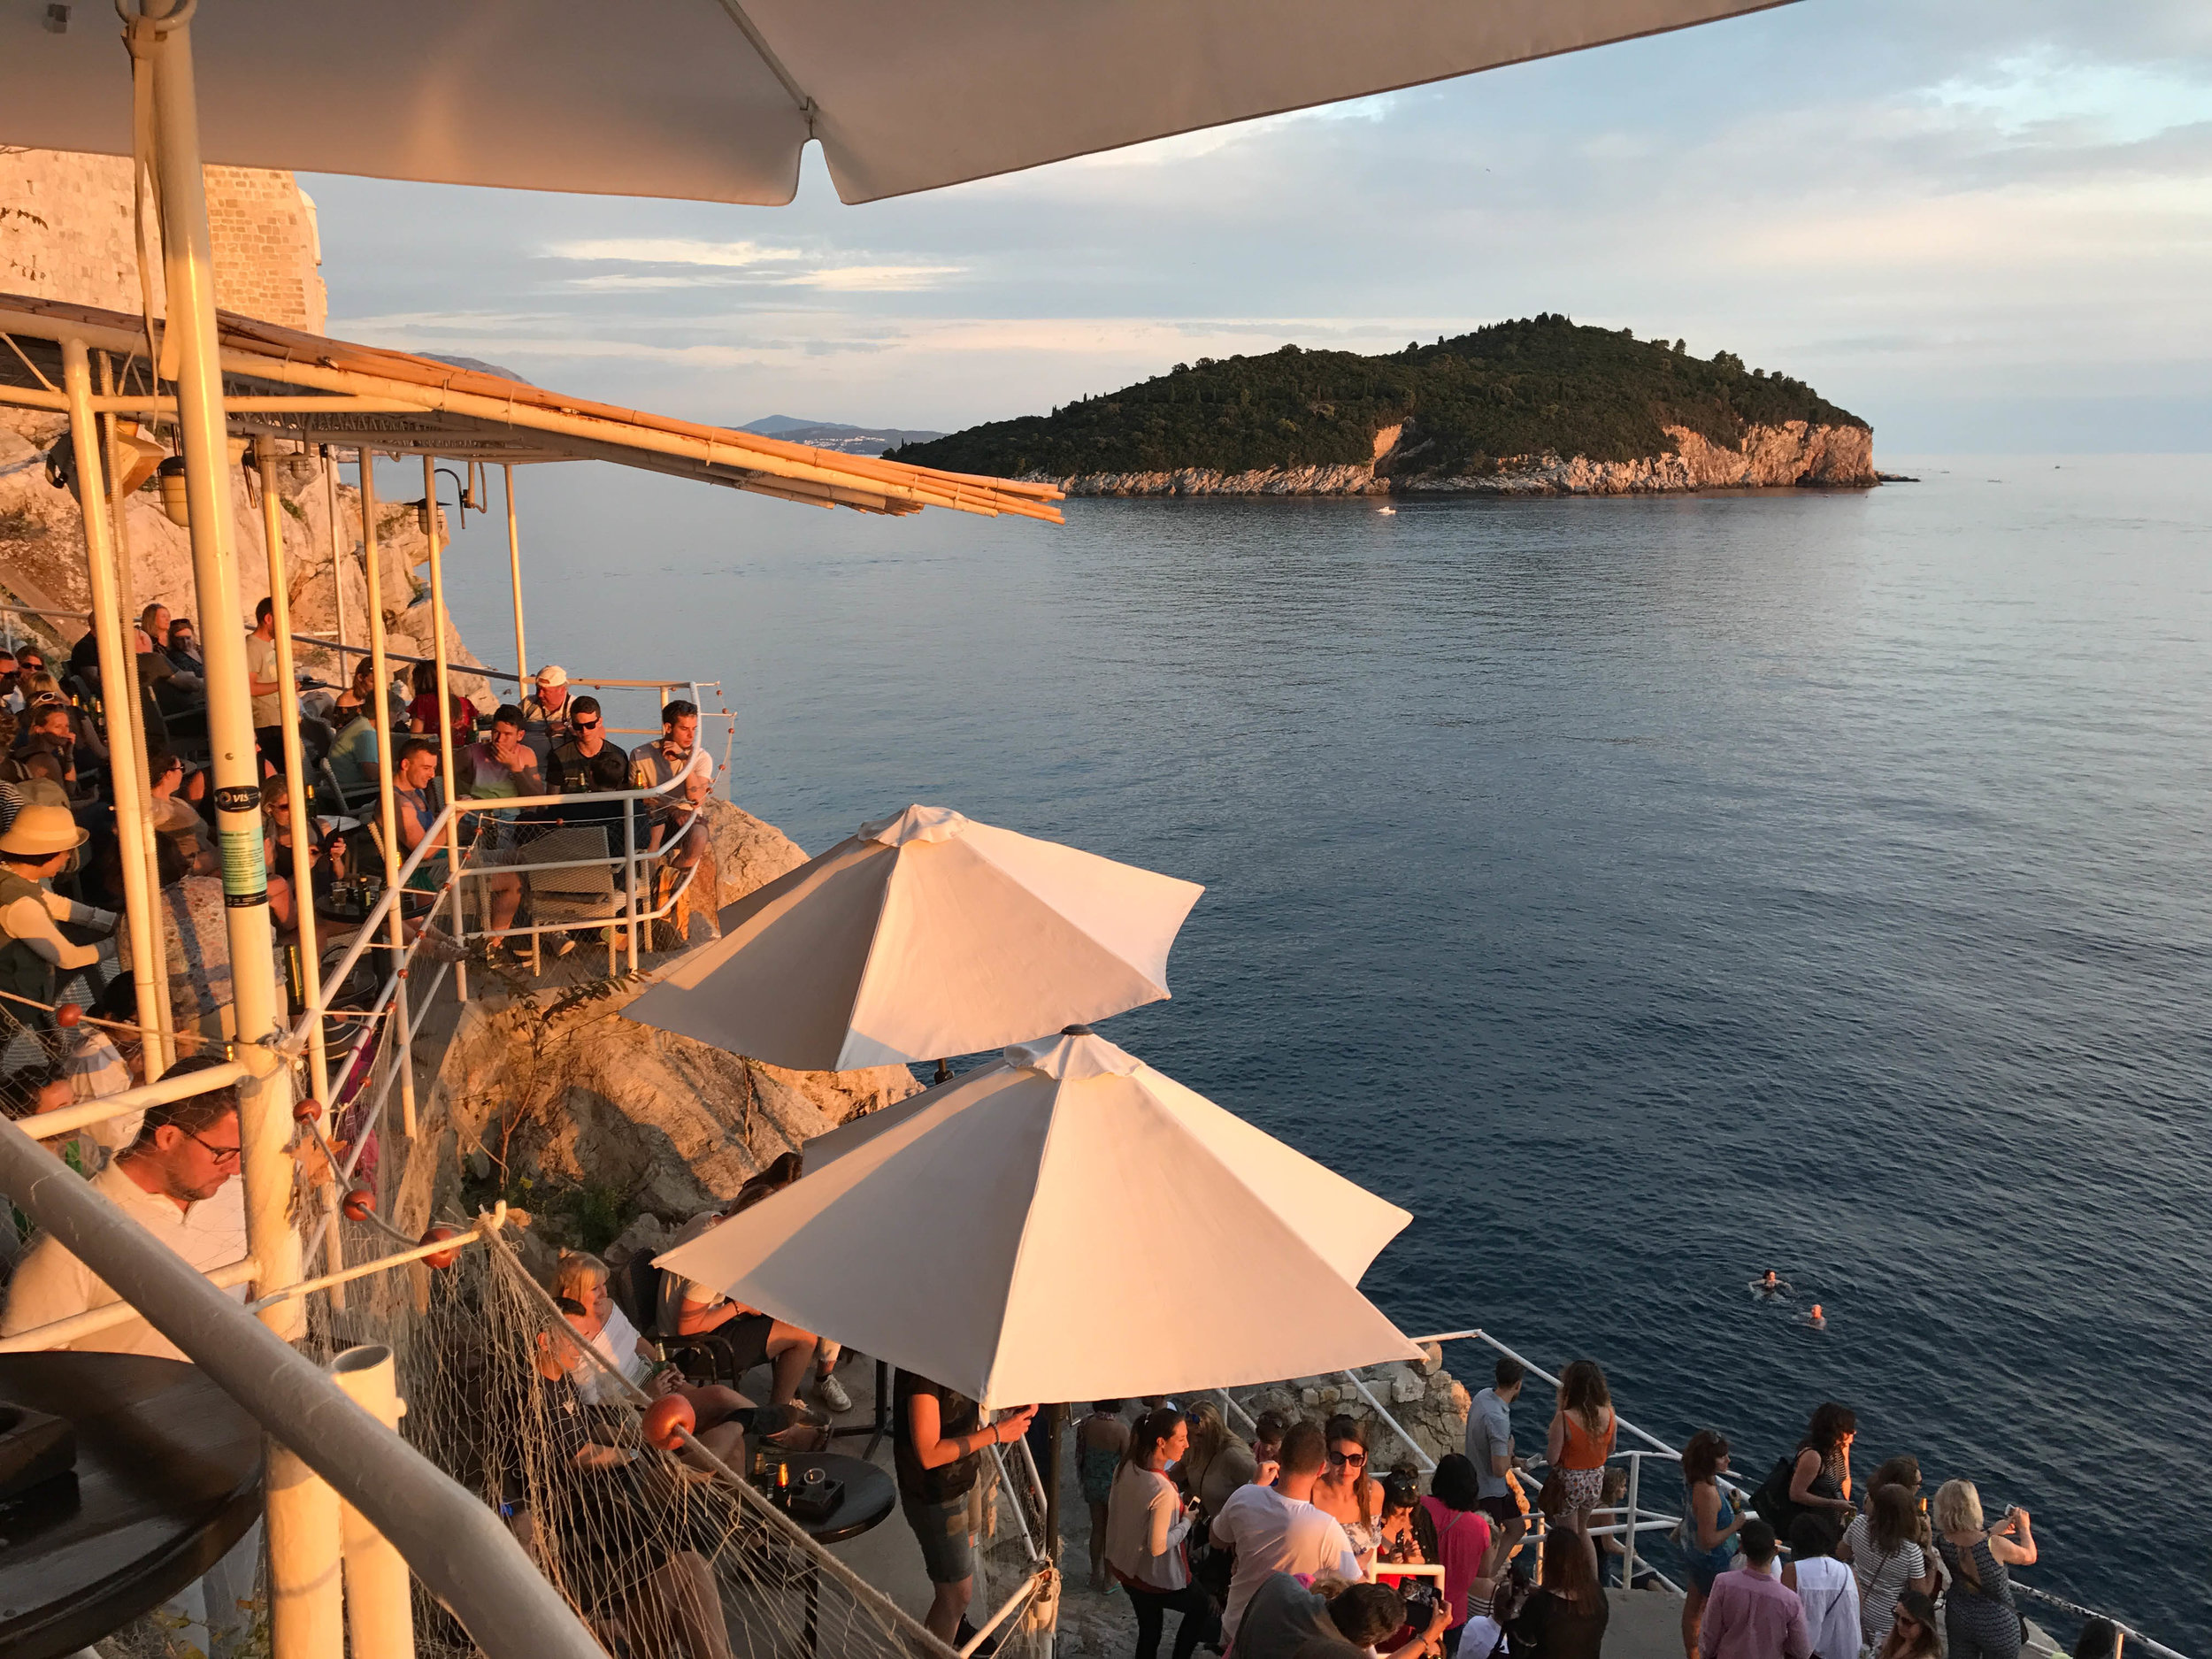 Sunset Drinks: Buza Bar - Pass through a hole in the fortress walls to access the bar, and you'll find a lovely terrace over the sea with incredible views.